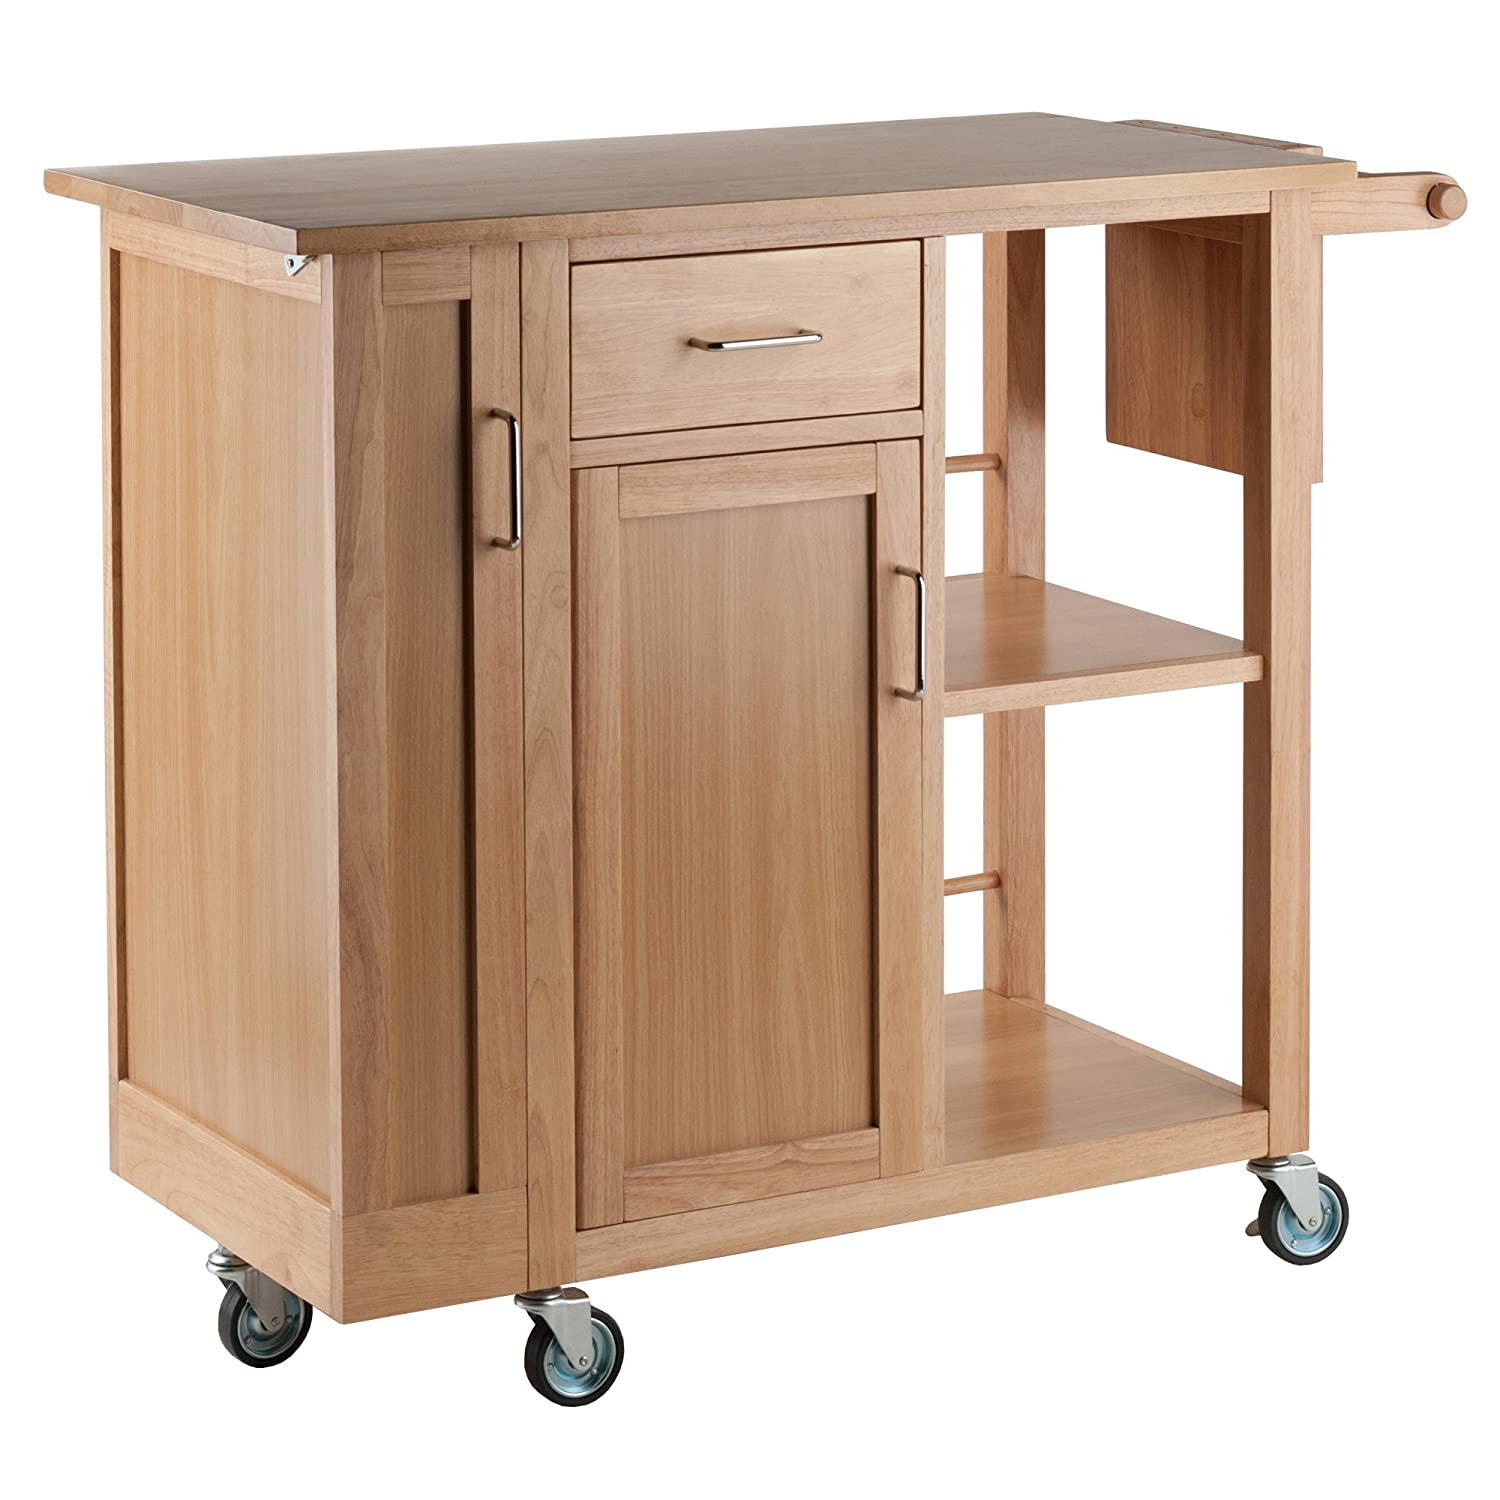 Winsome Douglas Cart Kitchen, Natural